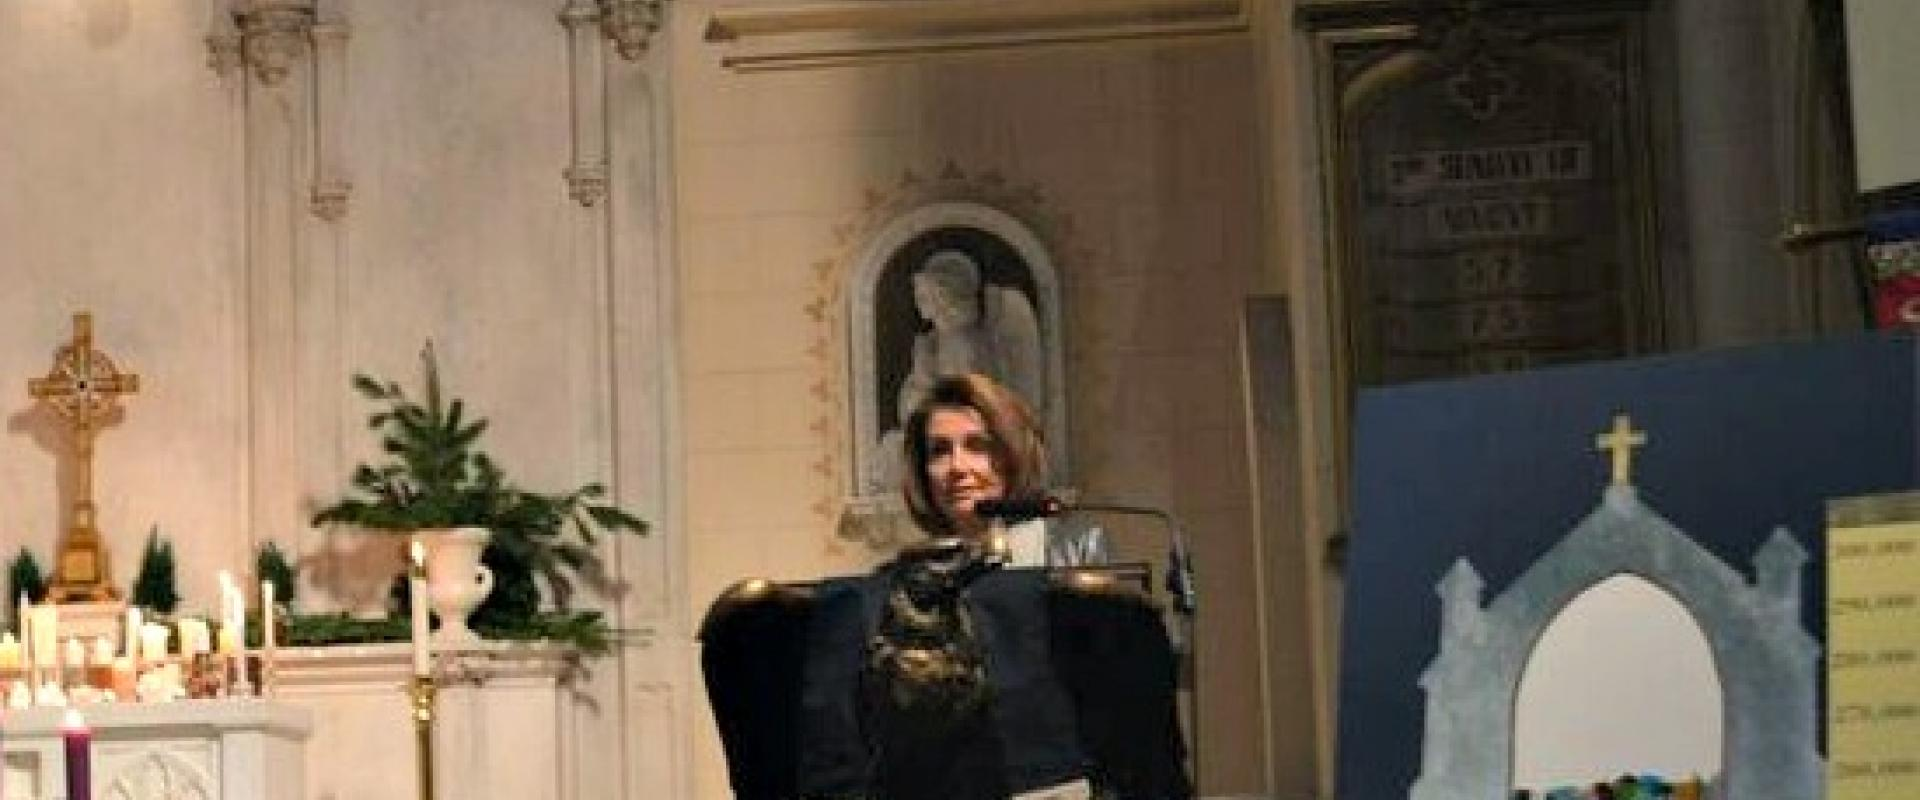 Congresswoman Pelosi joined community members to remember the loved ones we've lost and renew our commitment to ending gun violence in St. Luke's Episcopal Church for a Vigil marking the fourth anniversary of 26 lives lost in the Newtown, CT Sandy Hook Sc